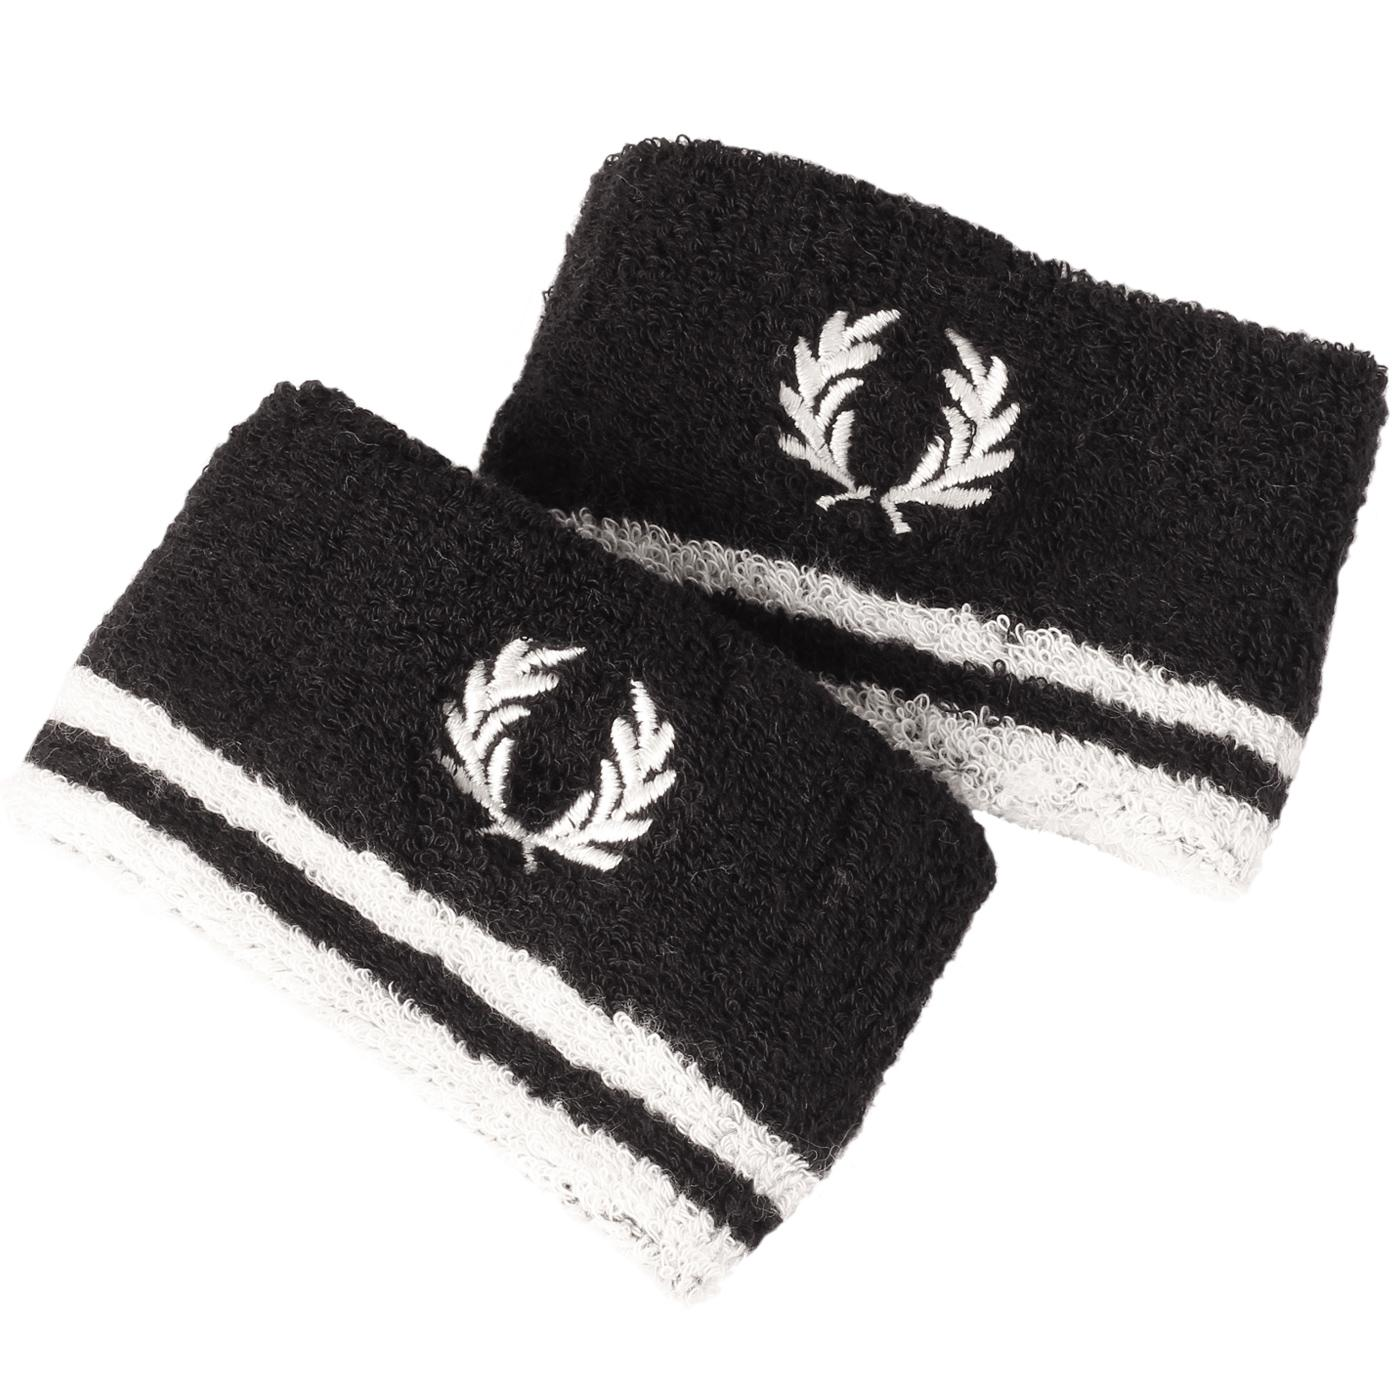 FRED PERRY Retro Tipped Towelling Sweatbands (B/W)